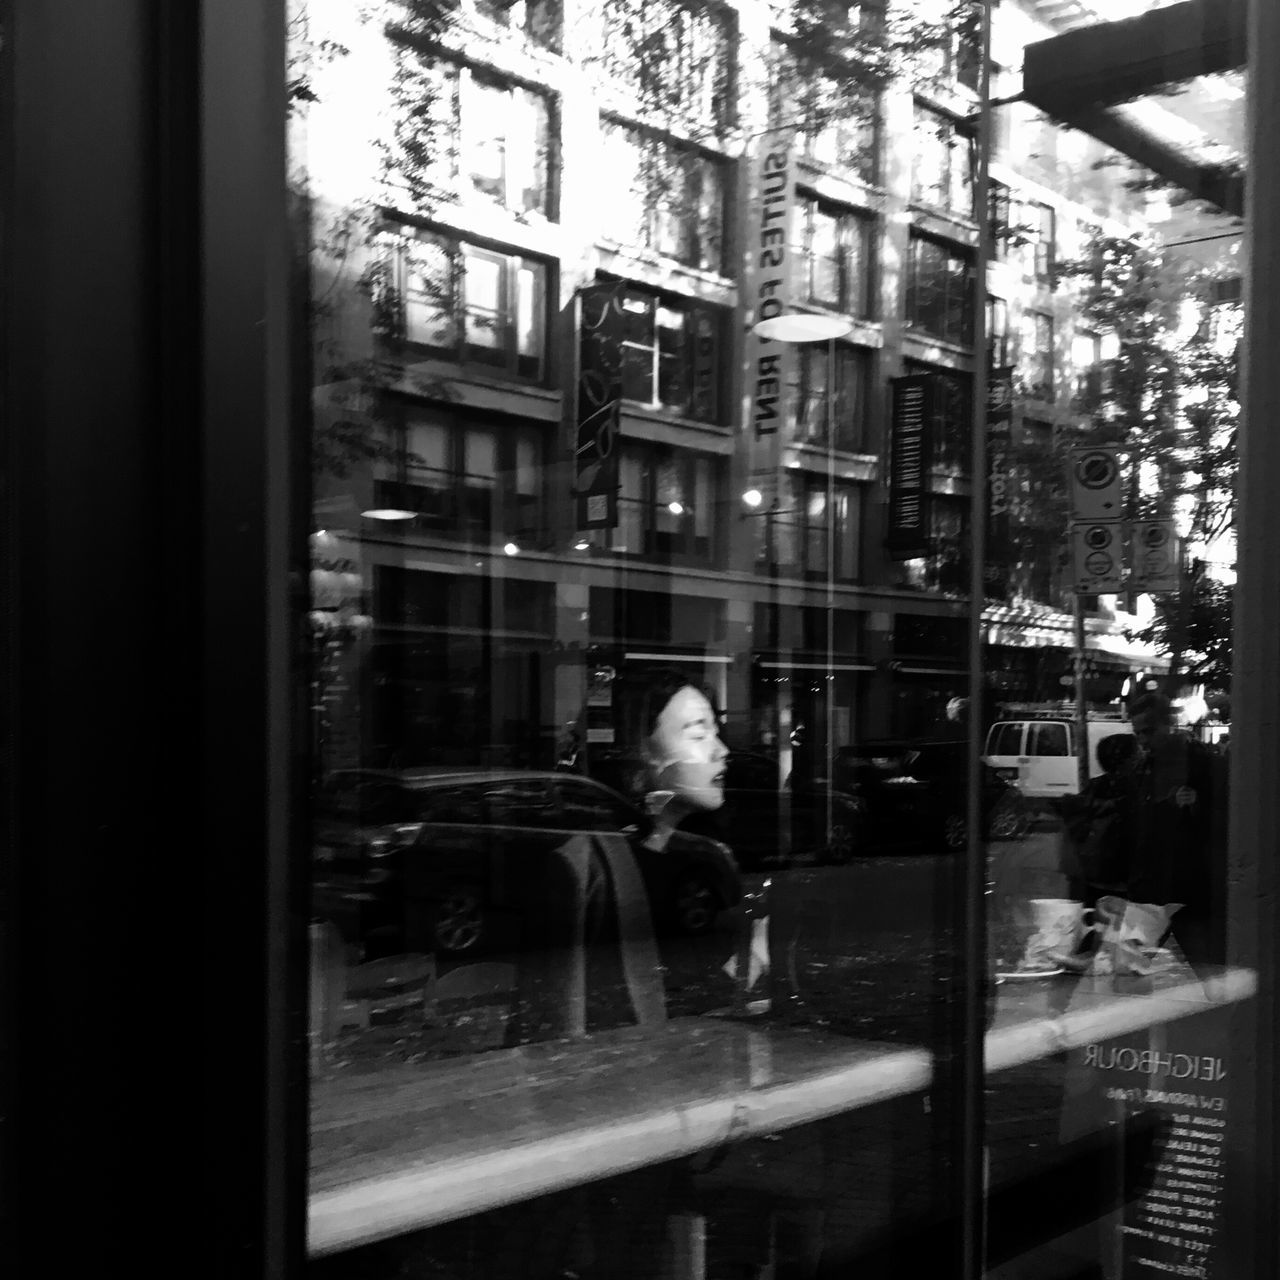 Building Exterior City Reflection City Life Person Glass Vancouver Coffee Window